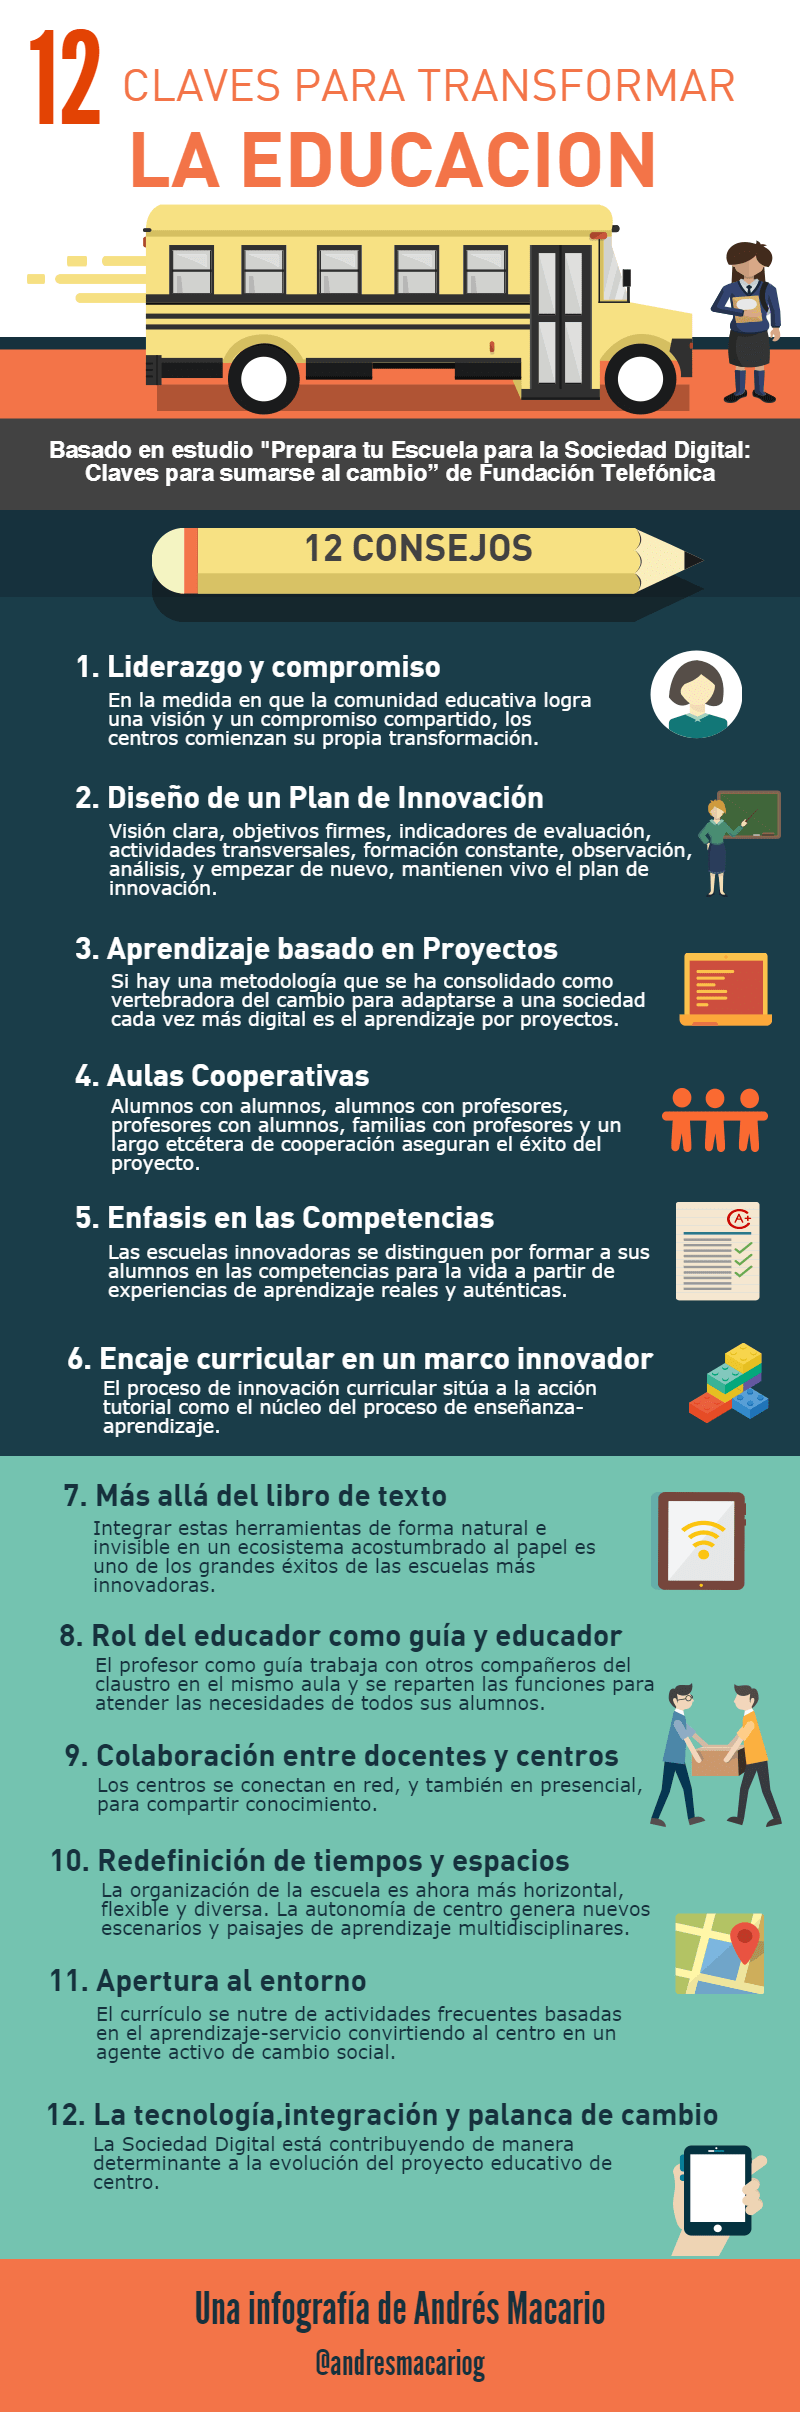 12 claves para transformar la Educación